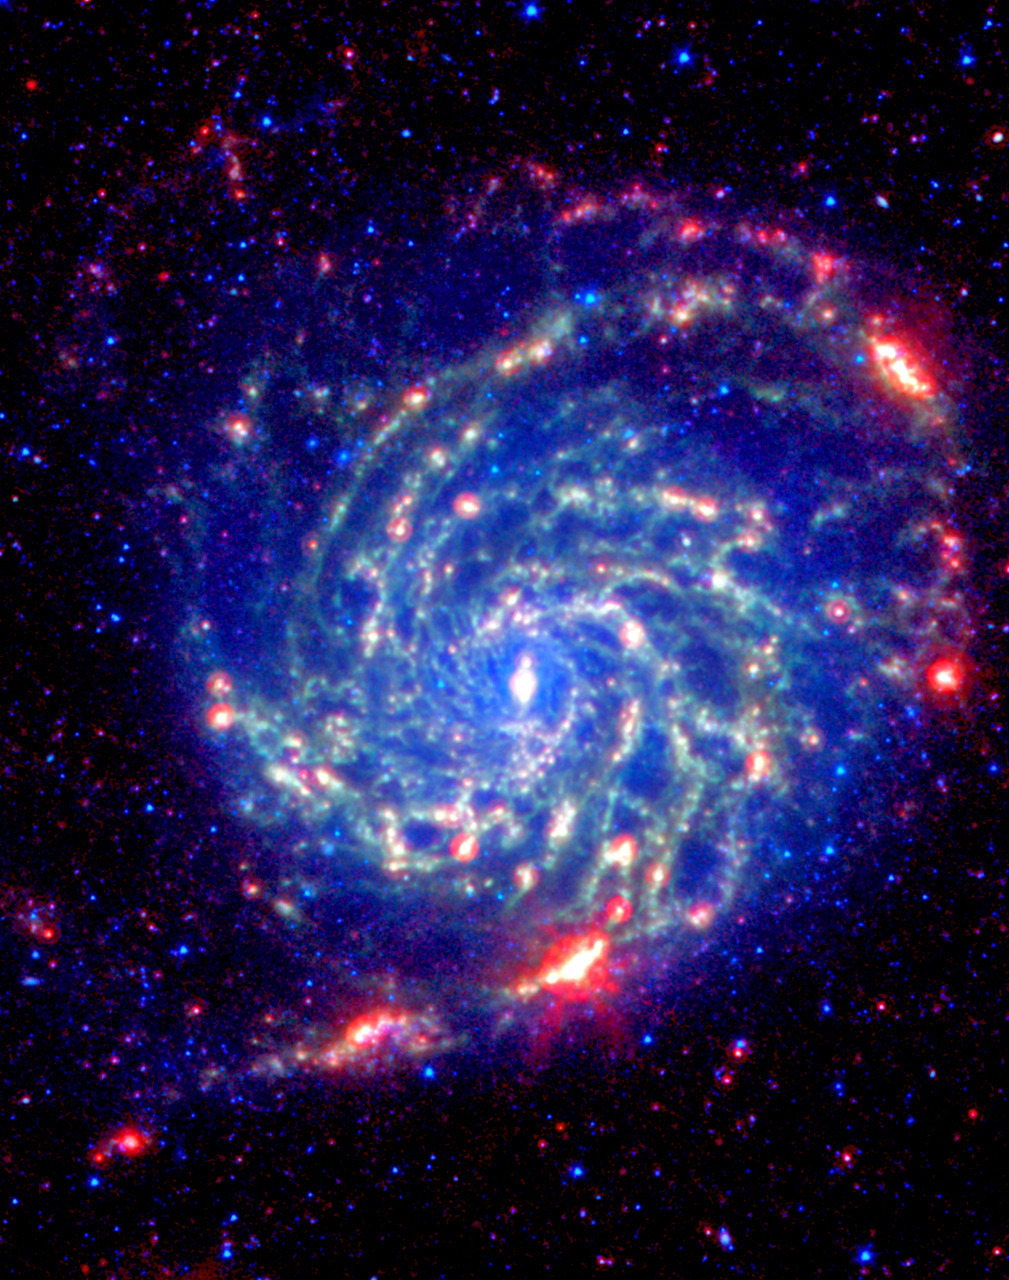 No Organics Zone Circles Pinwheel Galaxy  Research from the Spitzer Space Telescope  has revealed that the outer red zone of the Pinwheel galaxy lacks organic molecules present in the rest of the galaxy. The red and blue spots outside of the spiral galaxy are either foreground stars or more distant galaxies.  The organics, called polycyclic aromatic hydrocarbons, are carbon-containing molecules that help in the formation of stars. These hydrocarbons provide the raw material for carbon on planets, and can be formed into amino acids and nucleotides.  This research suggests that life may be less common in the metal-poor outer regions of galaxies.